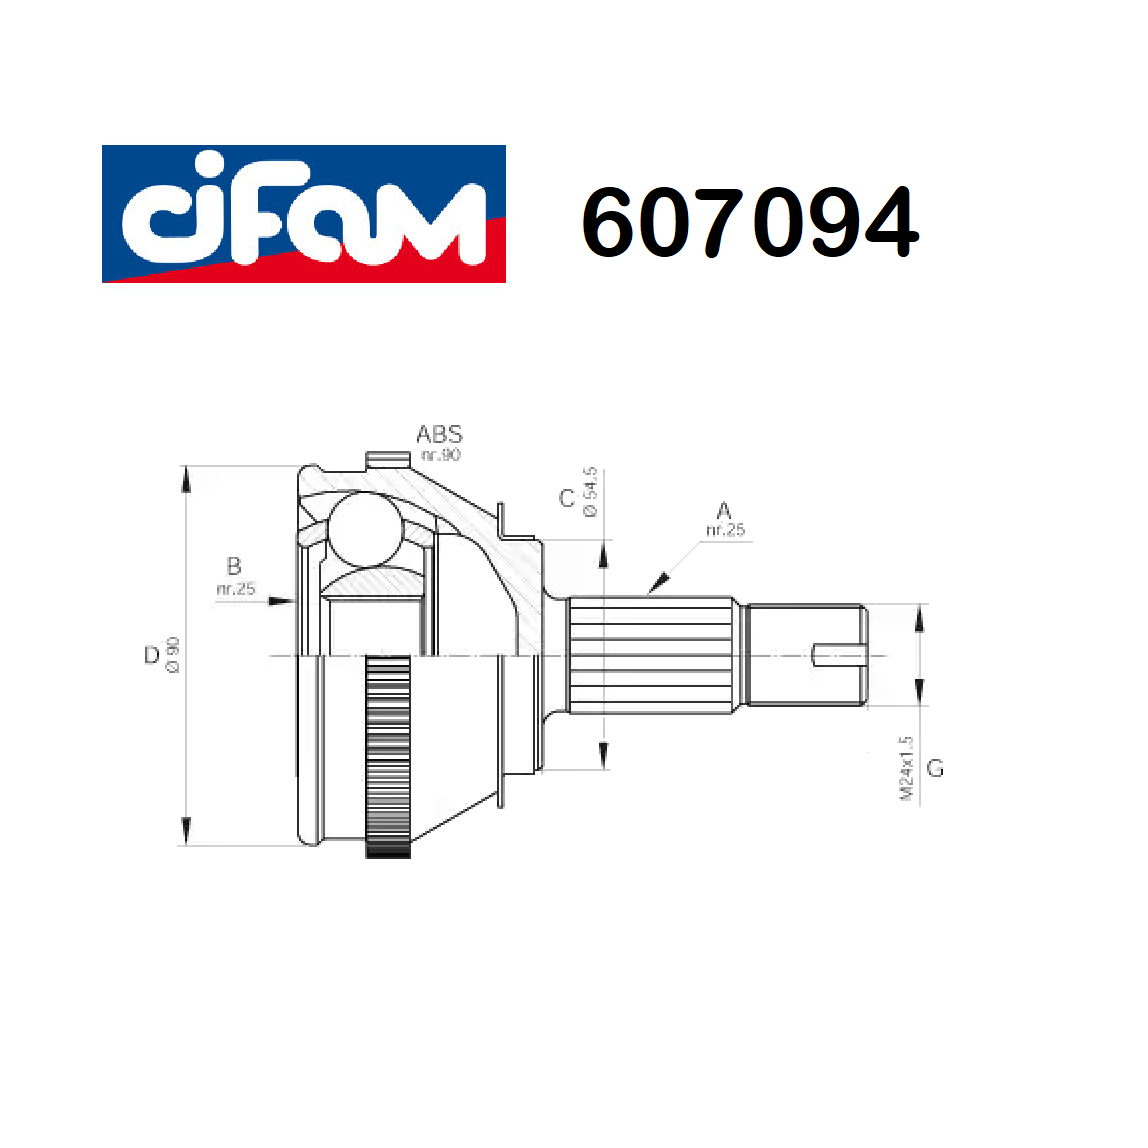 HALF-AXLES JOINT WHEEL SIDE FIAT CROMA - LANCIA THEMA CIFAM FOR 82443532